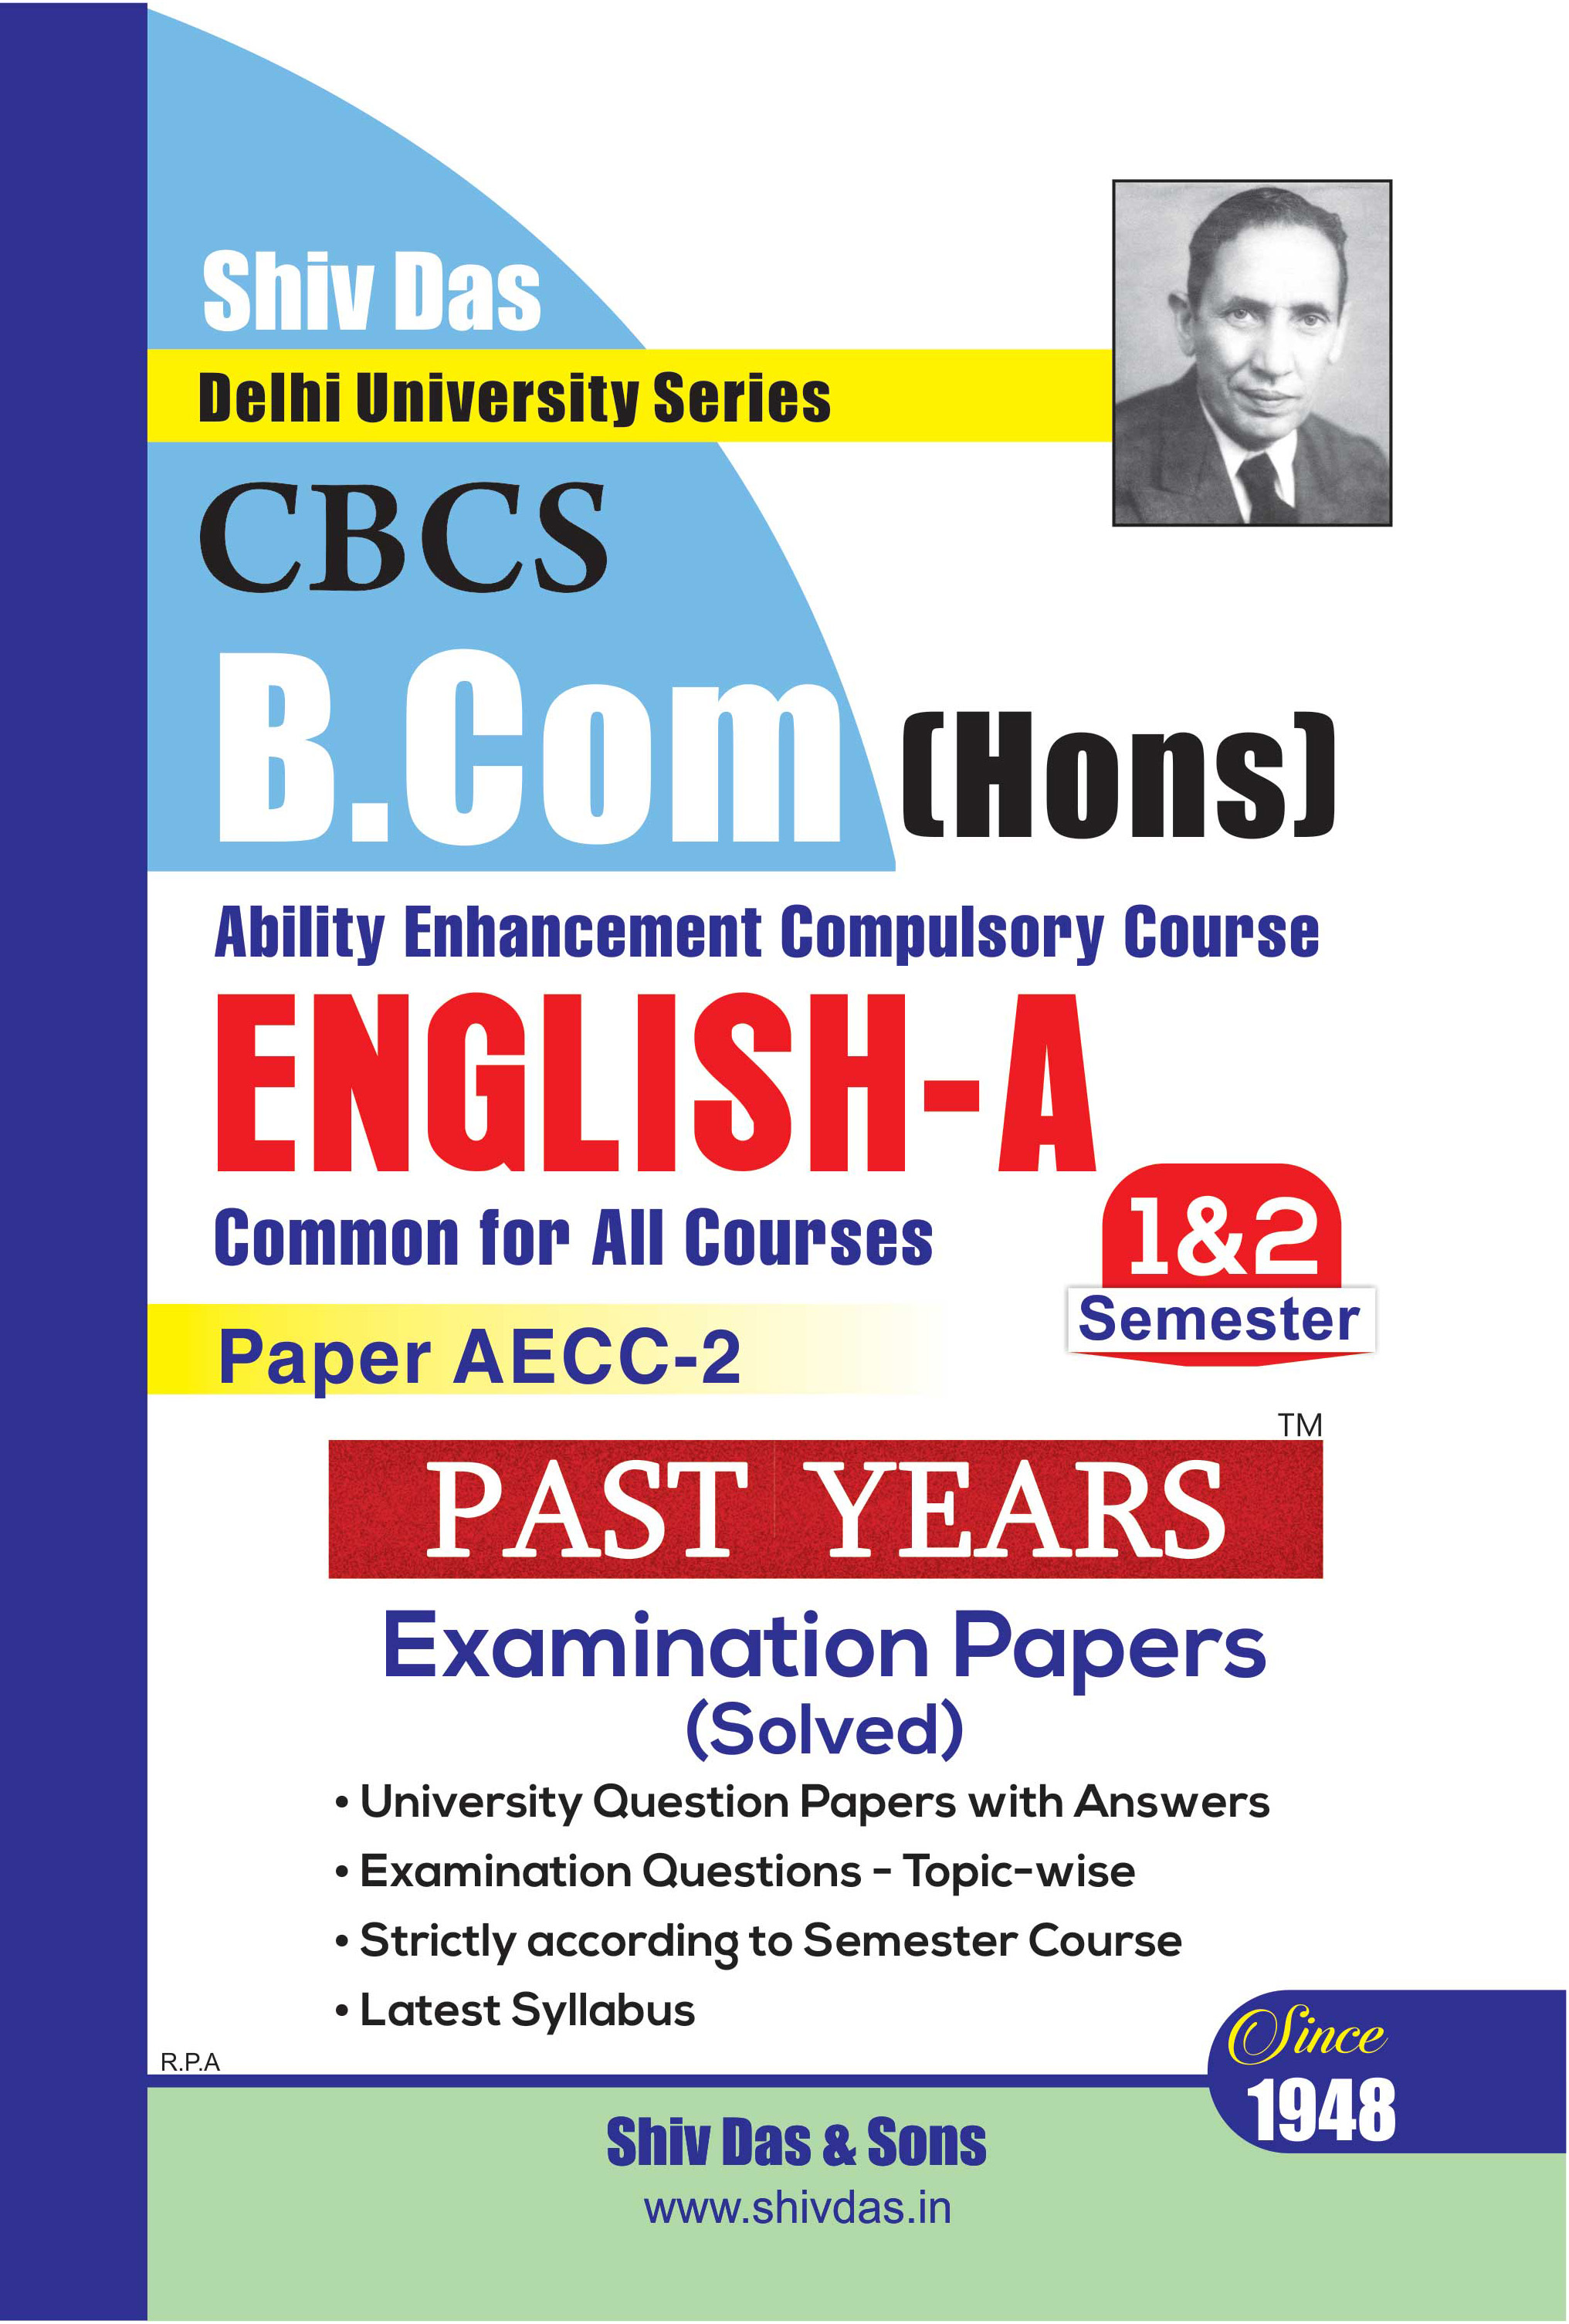 English - A for B.Com Hons Semester 2 for Delhi University by Shiv Das